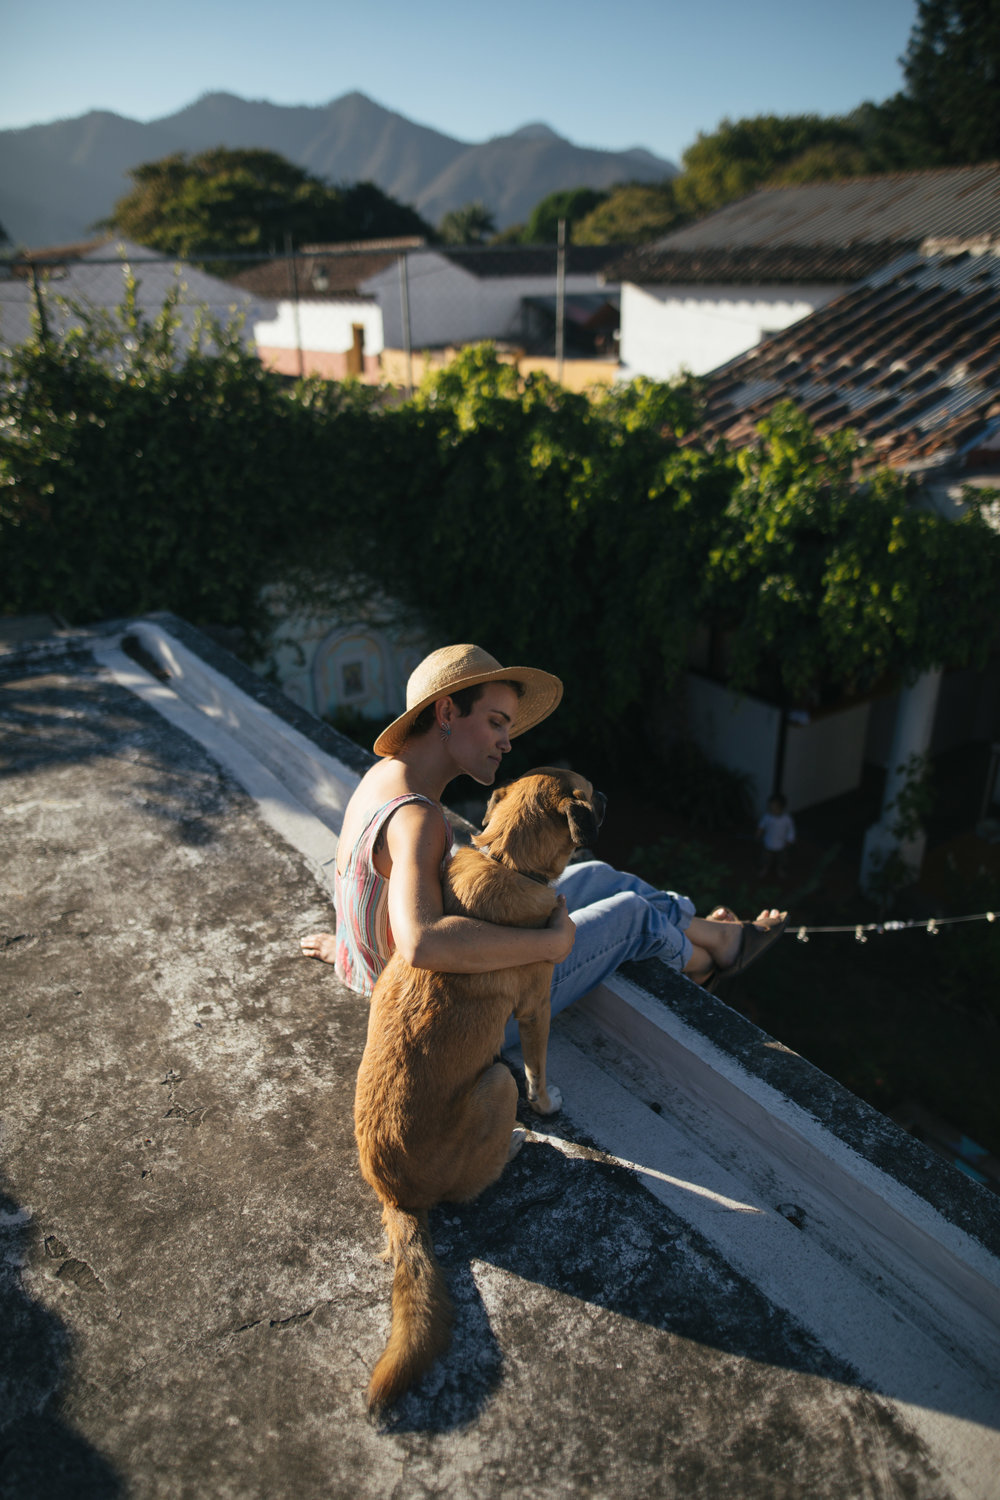 JESS BERCOVICI POSES WITH HER DOG GRUNER ON THE ROOFTOP OF STELA 9 AIRBNB AND BOUTIQUE OVERLOOKING ANTIGUA, GUATEMALA ON JAN. 13. BERCOVICI MOVED TO GUATEMALA A DECADE AGO, AND FOUNDED STELA 9 THREE YEARS LATER.